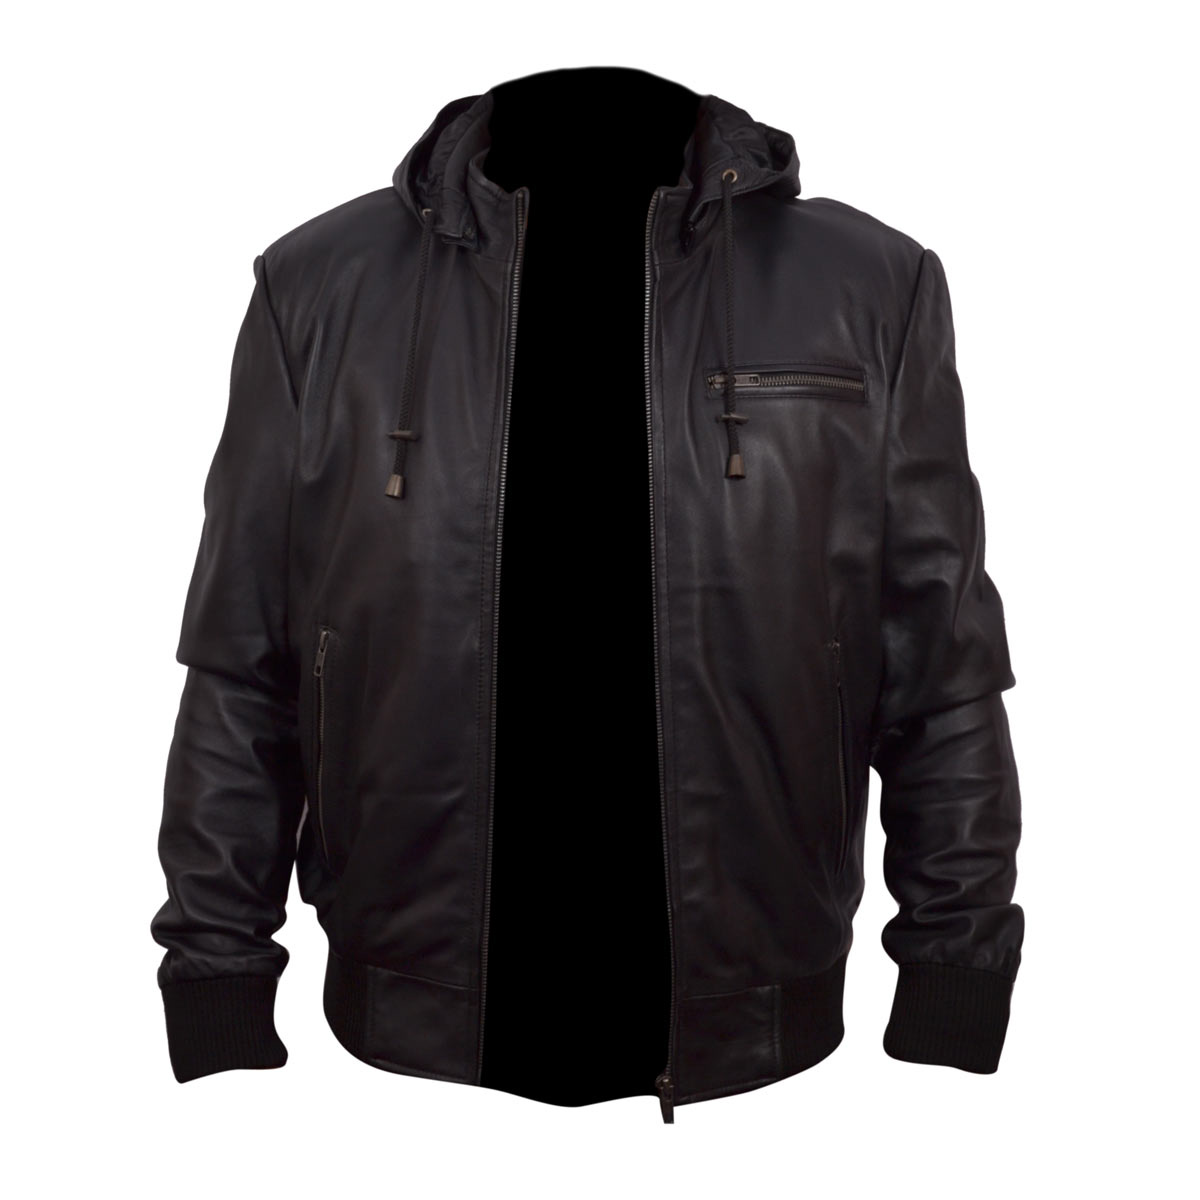 Mens Hoodie Black Bomber Leather Jacket Price In Pakistan